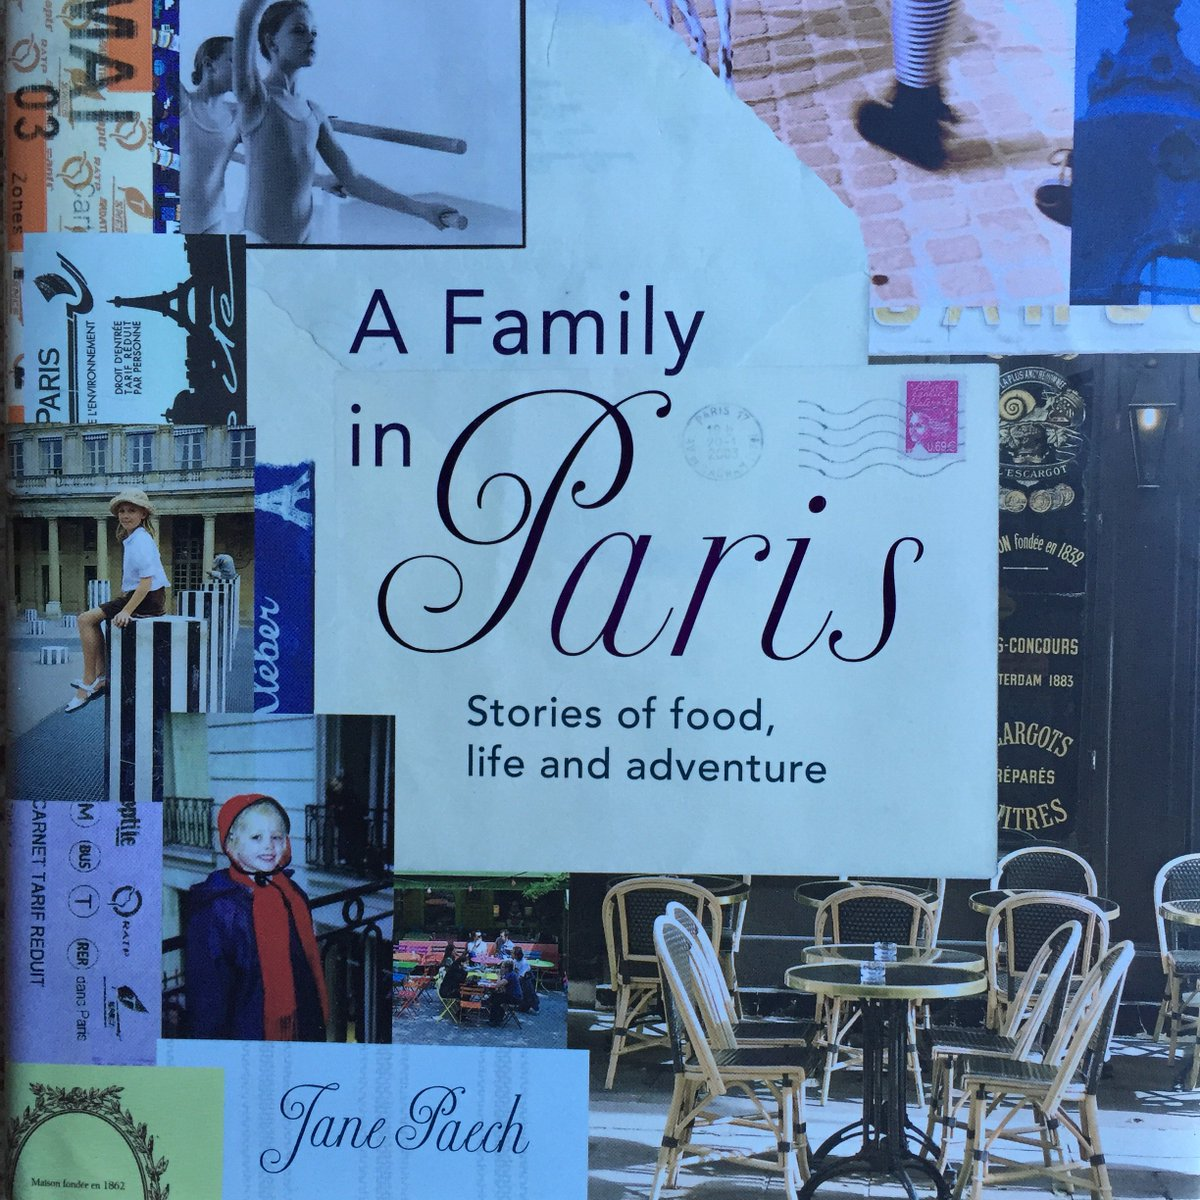 &#39;A Family in Paris&#39; ... an inspirational read by #JanePaech who shares her story of living in #Paris   http:// wp.me/p5Hclj-kc  &nbsp;  <br>http://pic.twitter.com/BK0tDFWC9s